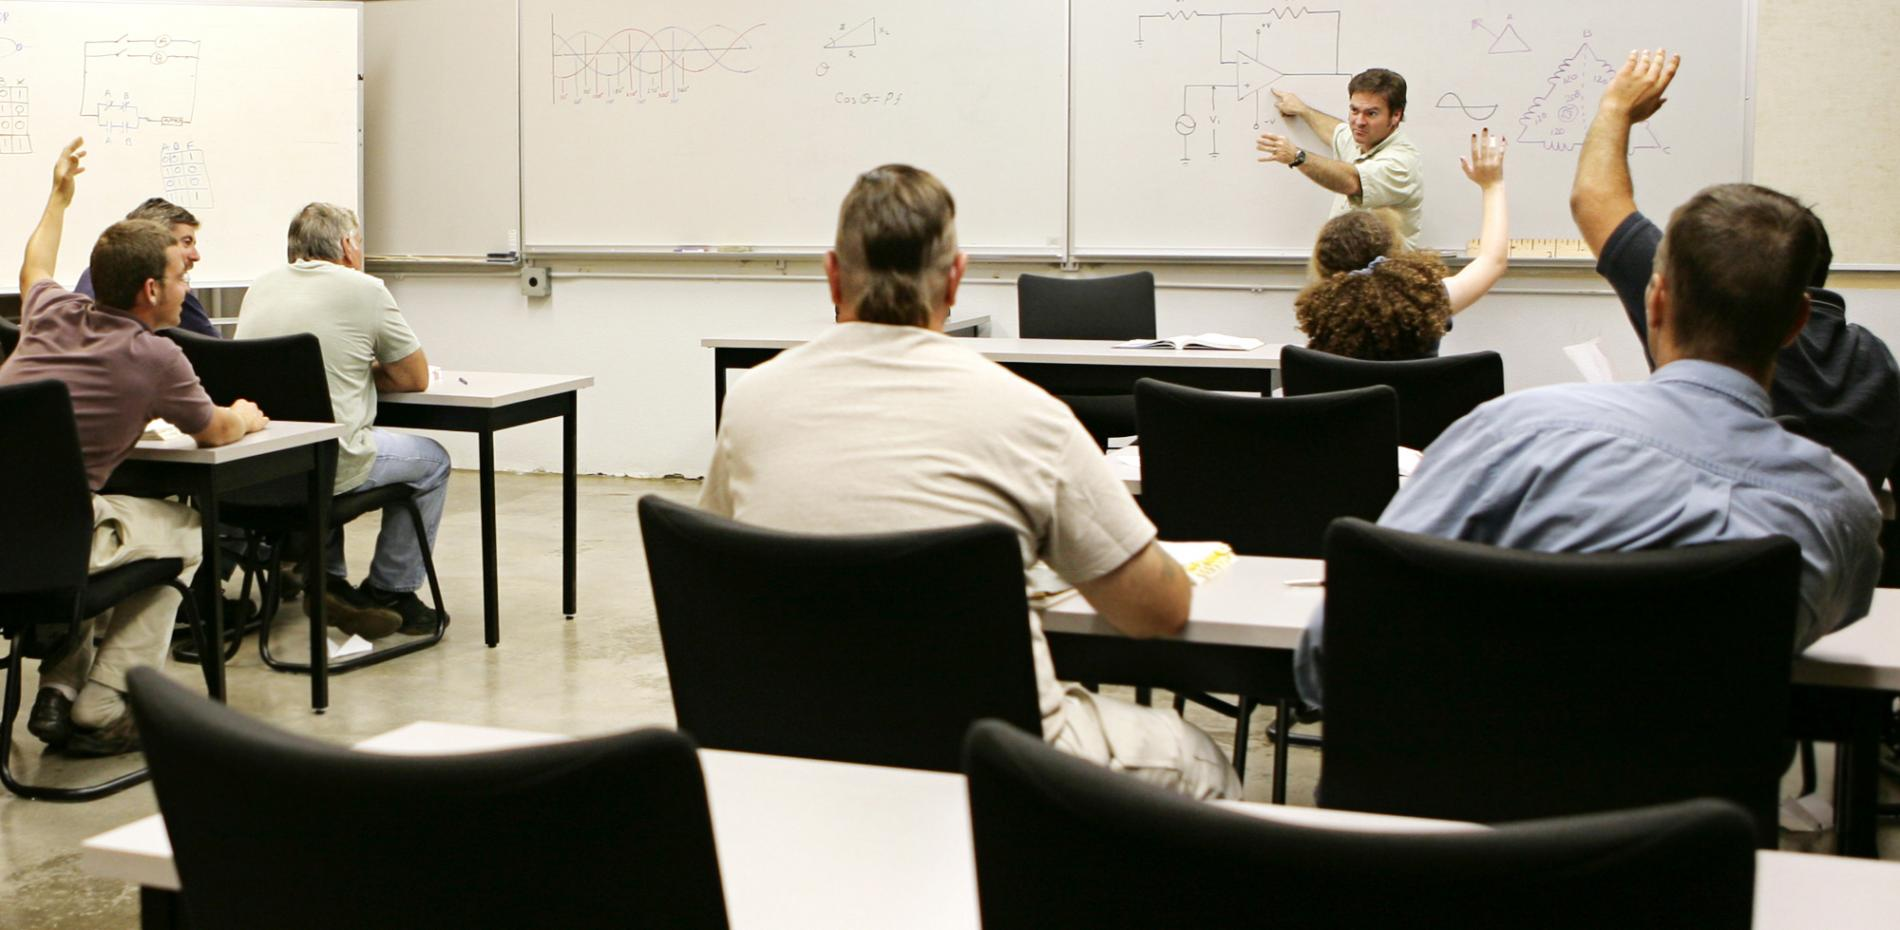 Instructor teaching to a classroom of students